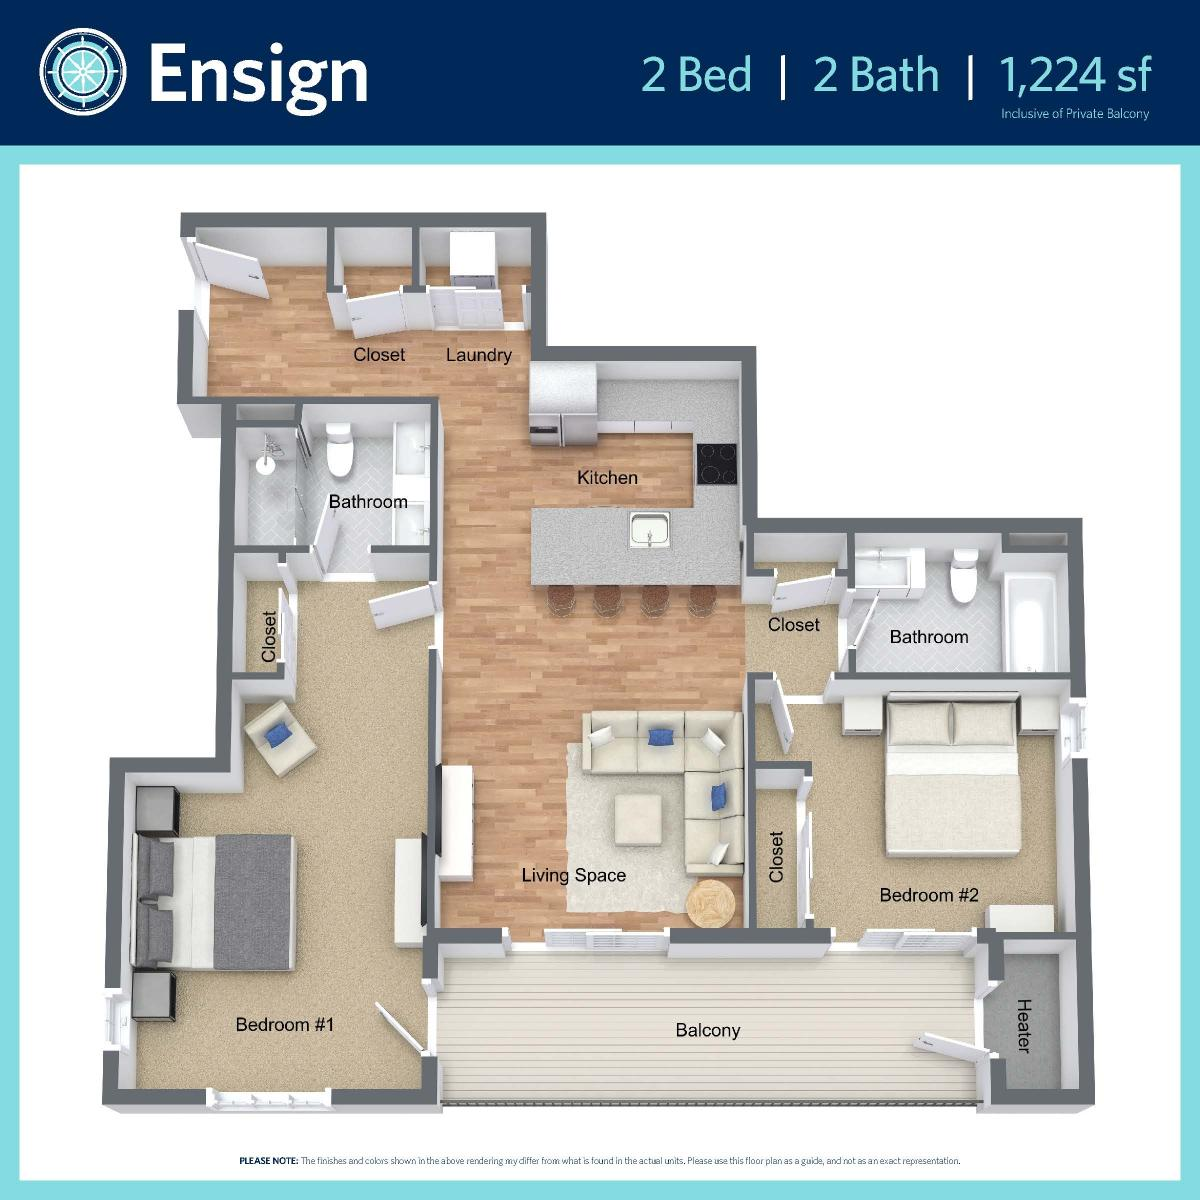 Ensign - 2 bed, 2 bath - 1,224 sq ft